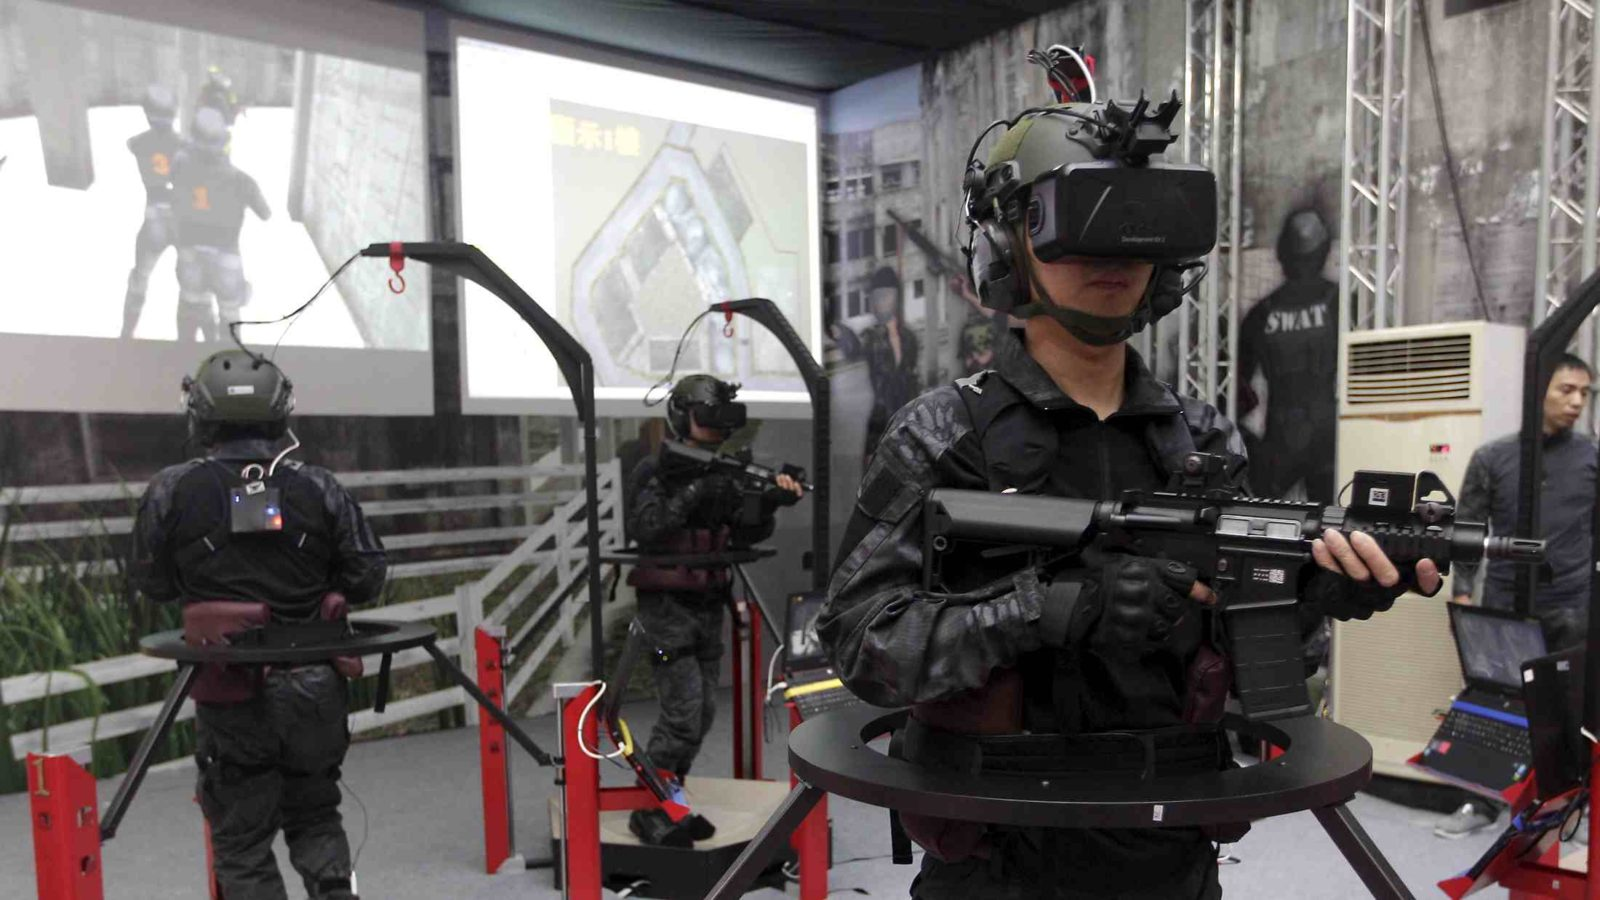 Soldiers display a Taiwan-made immersive interaction i2s3 shooting simulation system at the Taipei World Trade Centre during the 2015 Taipei Aerospace and Defense Technology Exhibition, August 12, 2015. The Taipei Aerospace and Defense Technology Exhibition is held from August 13 to 16. REUTERS/Pichi Chuang